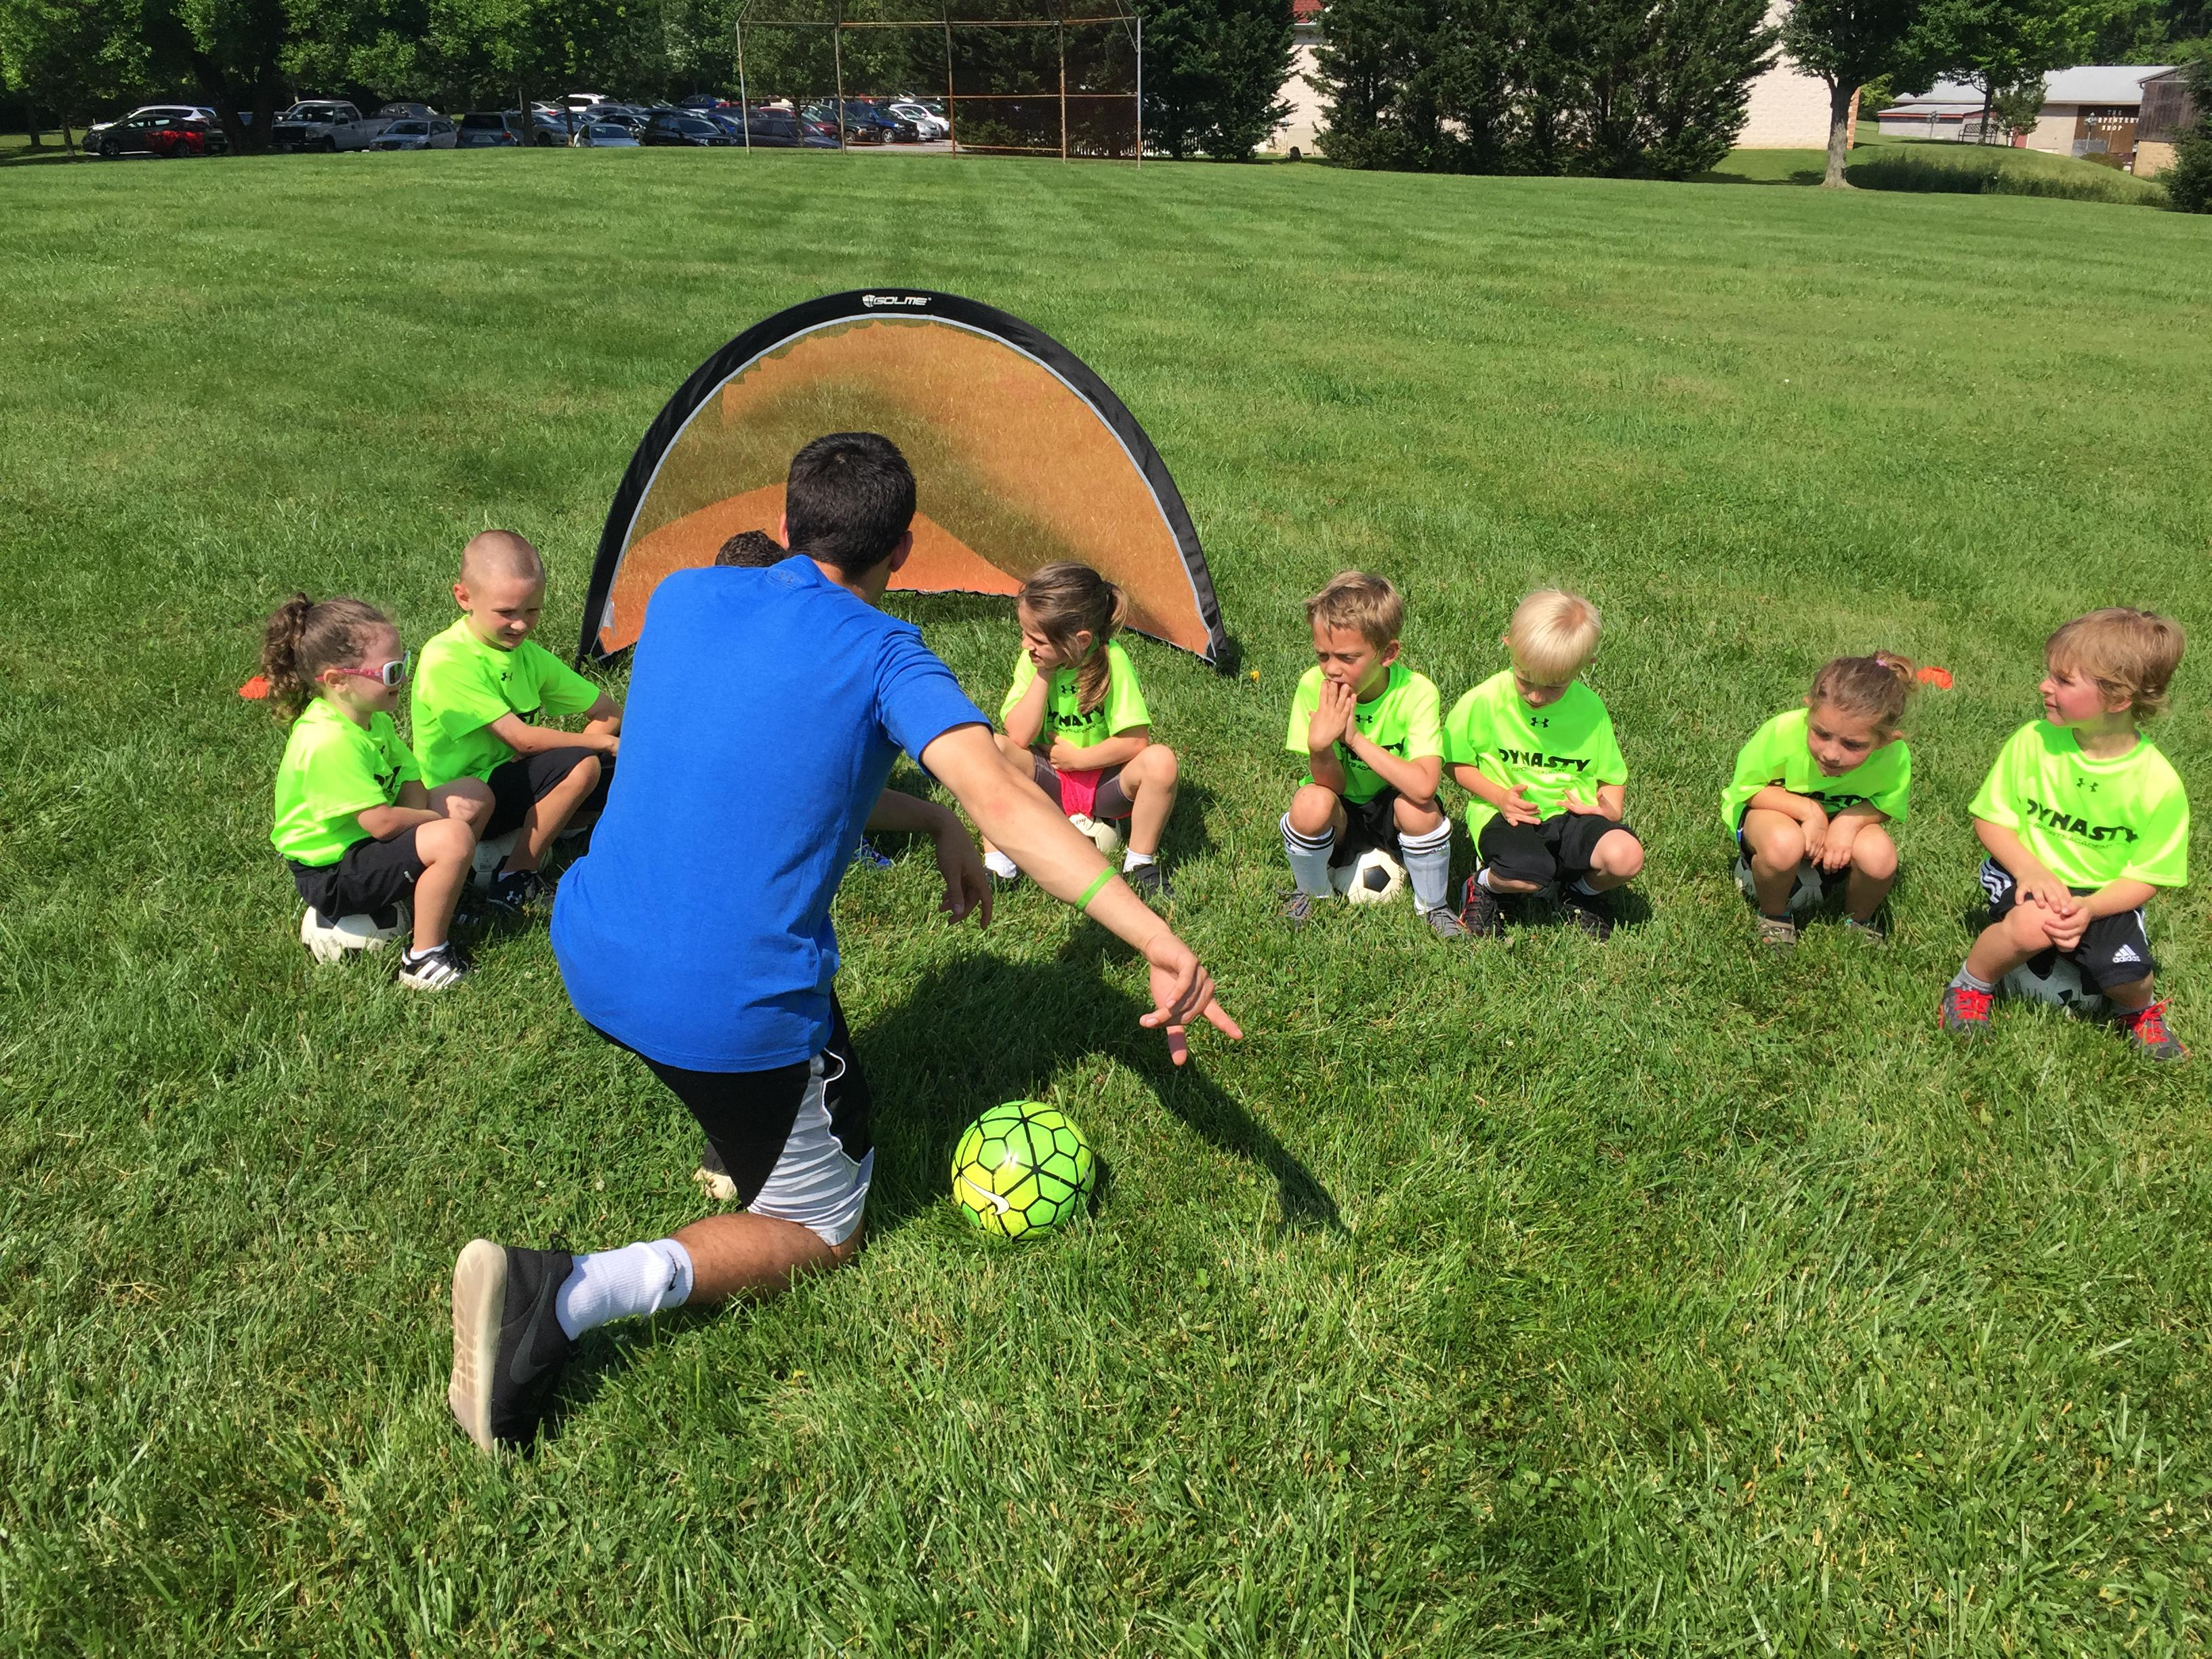 Register Now for Winter soccer programs!